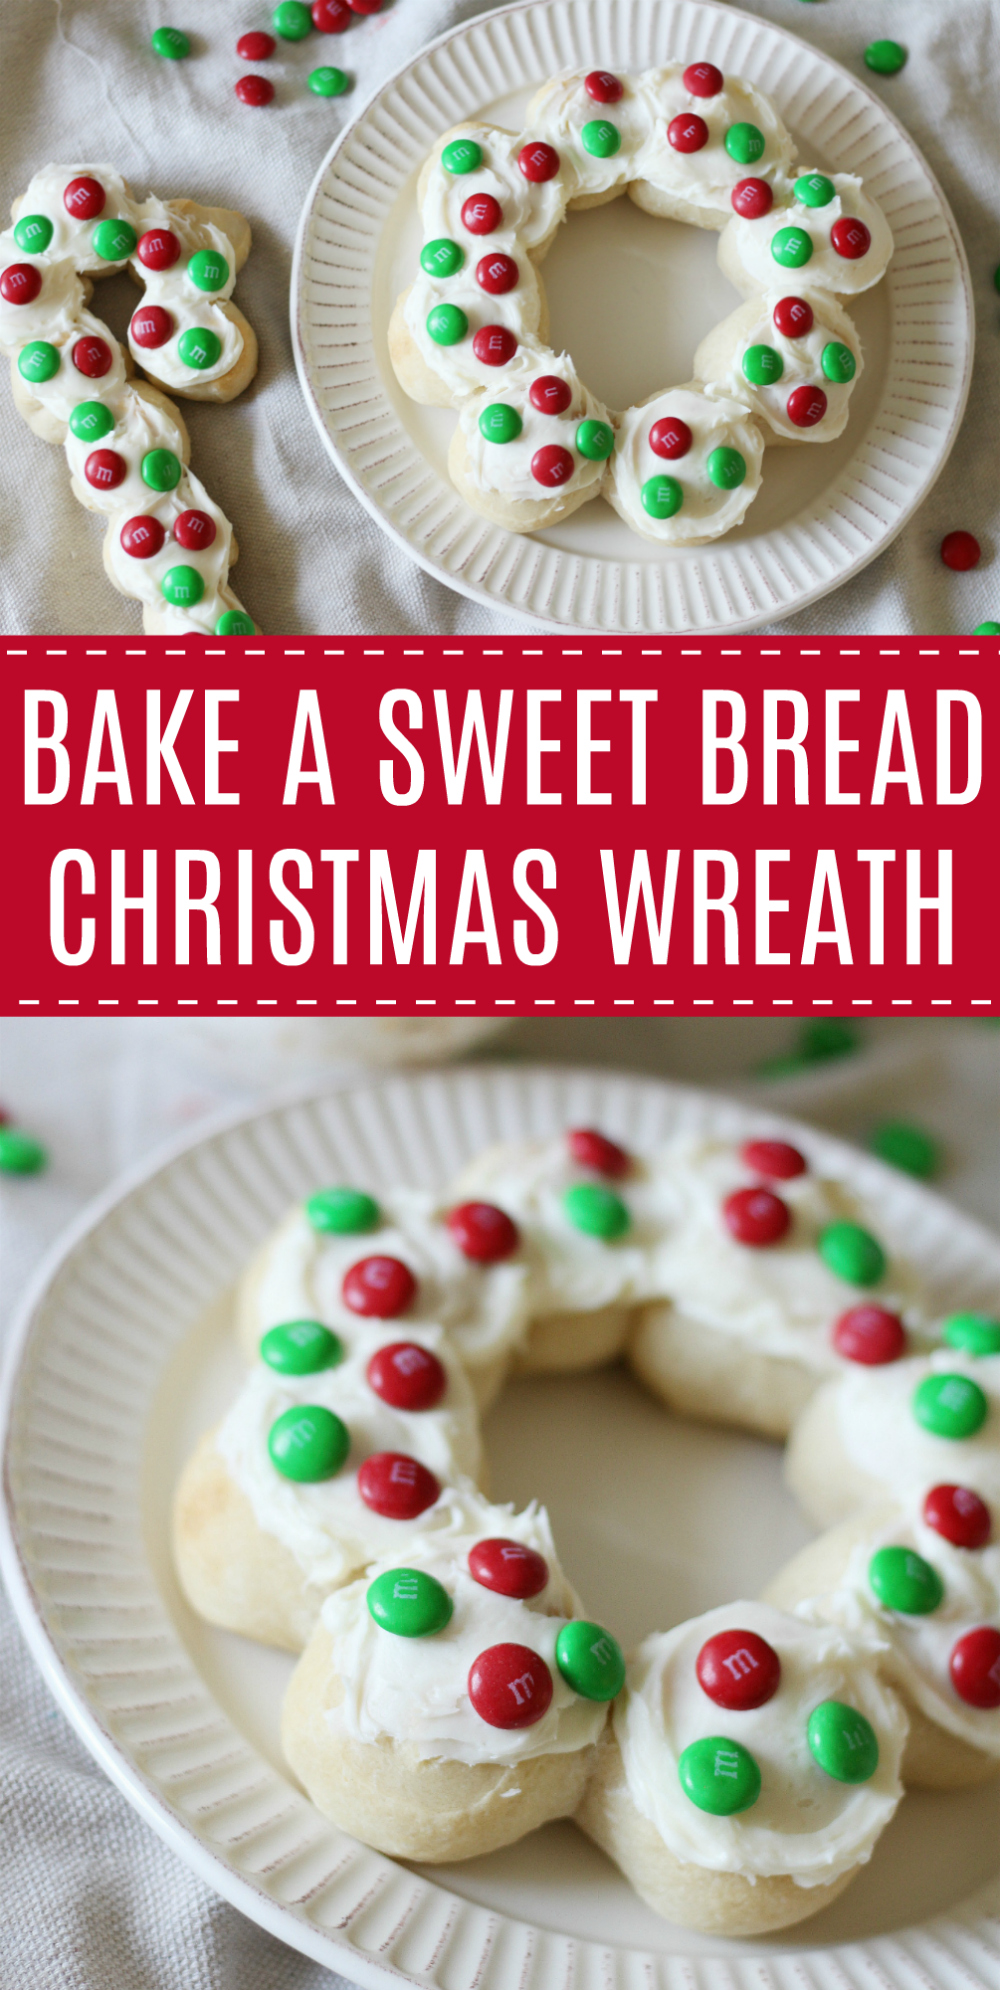 Bake A Sweet Bread Christmas Wreath for the Holidays